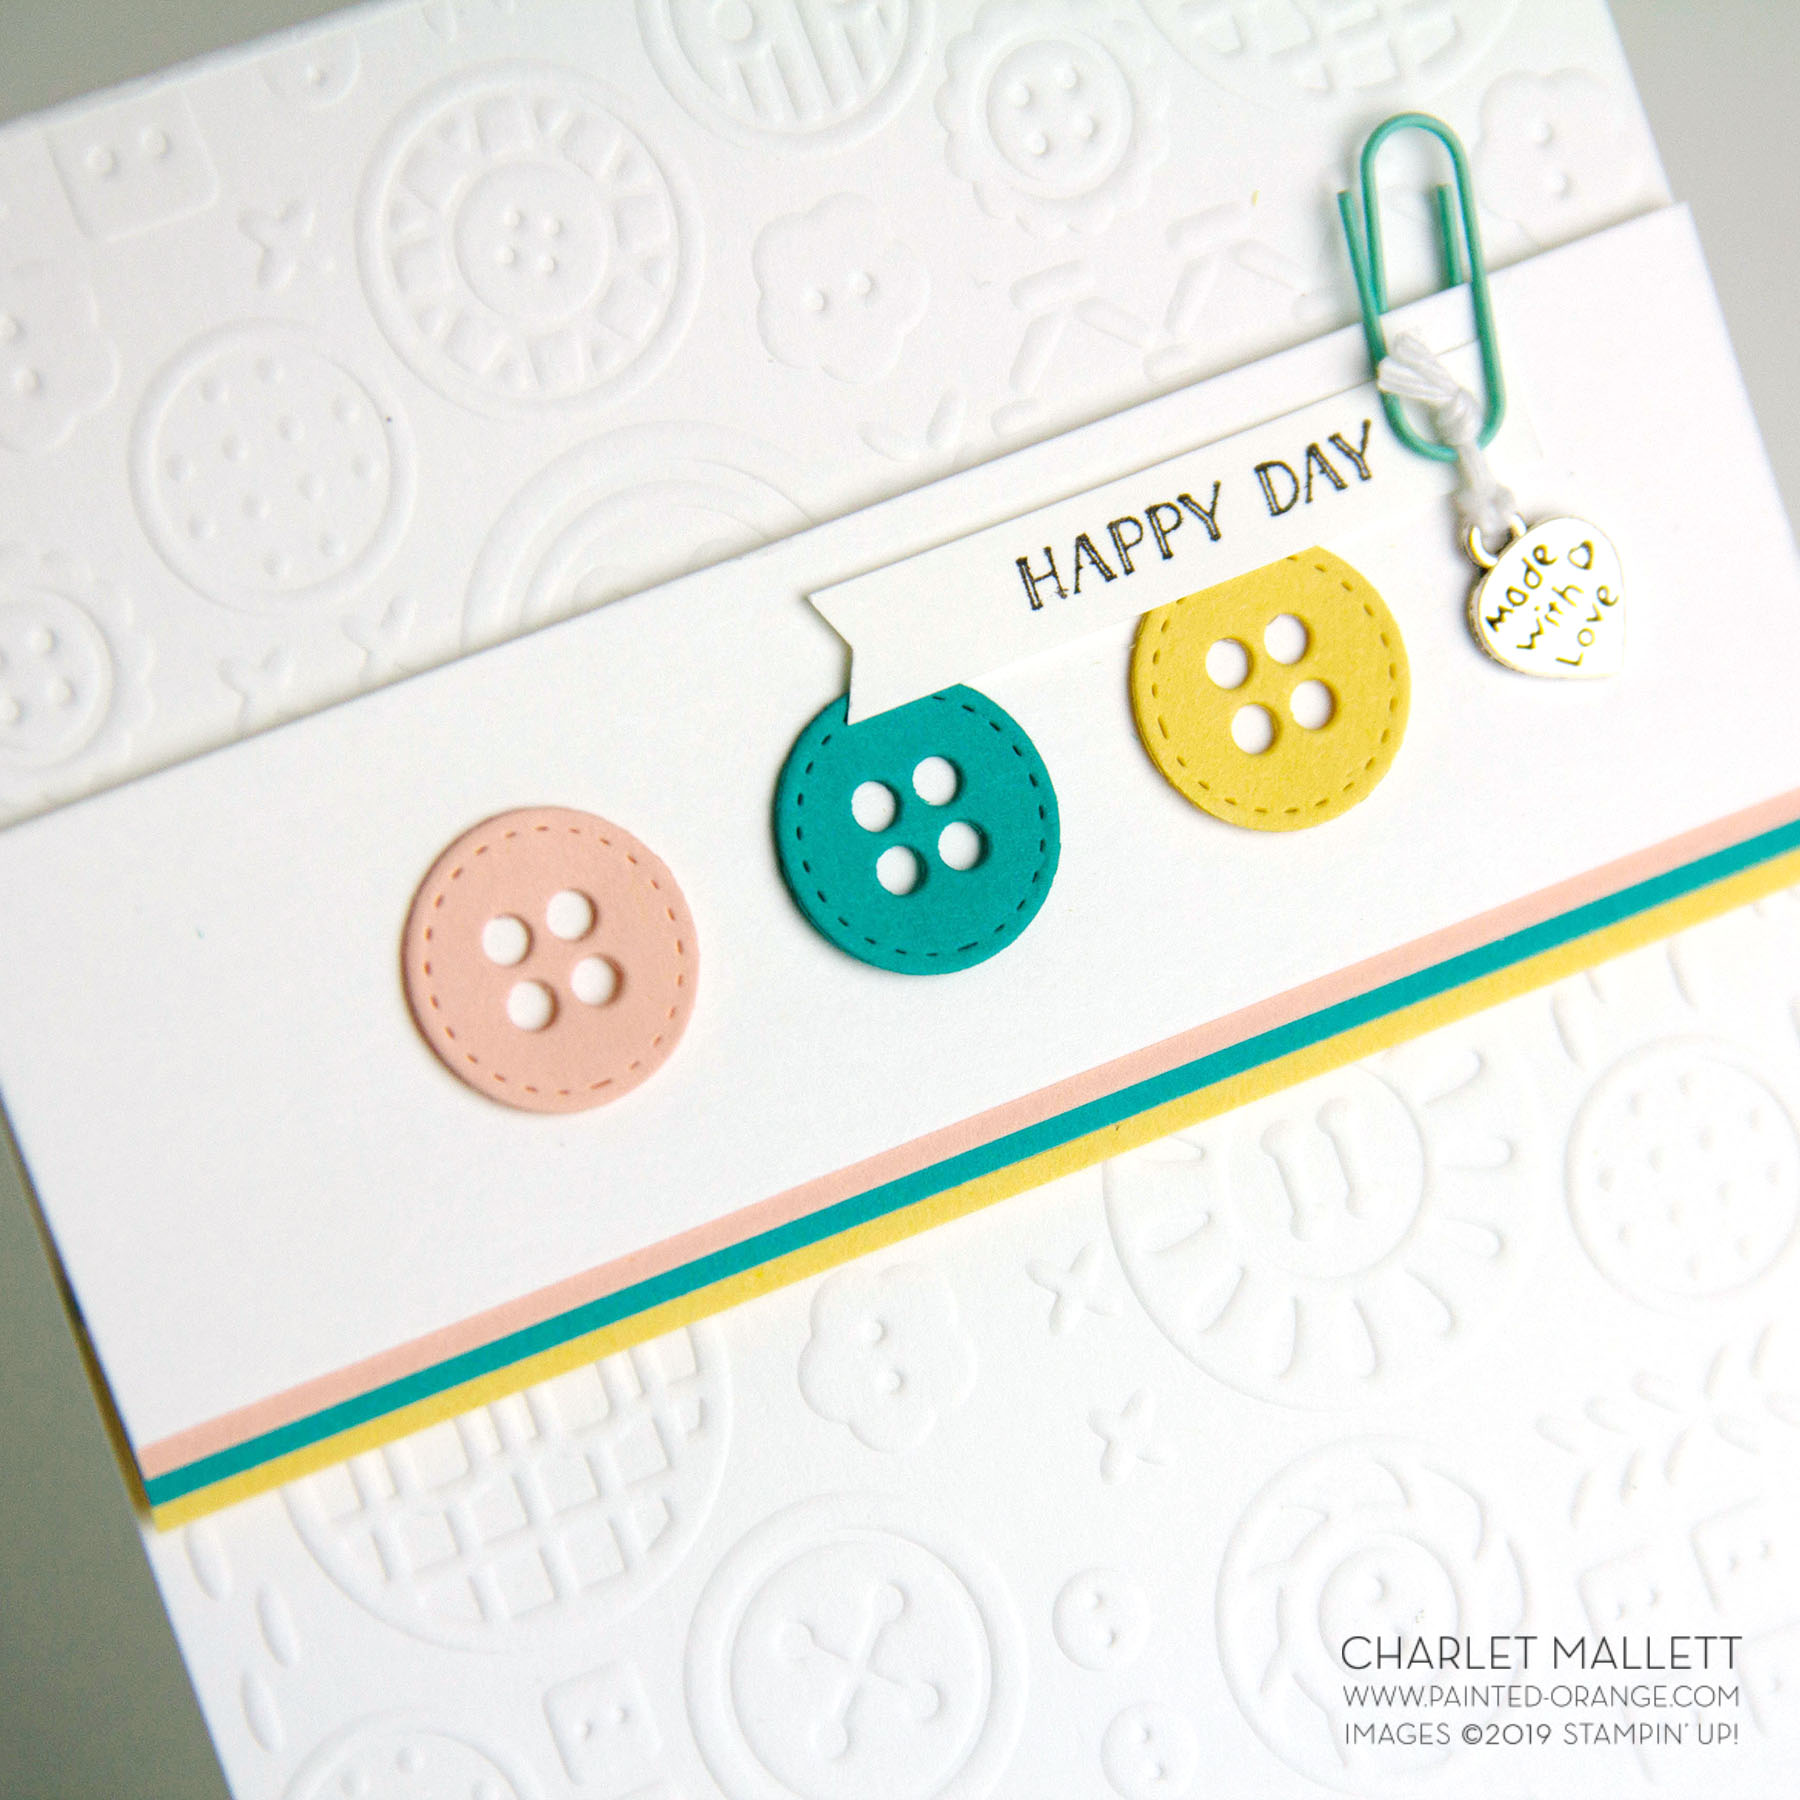 Arts & Crafts Button Button card- Charlet Mallett, Stampin' Up!